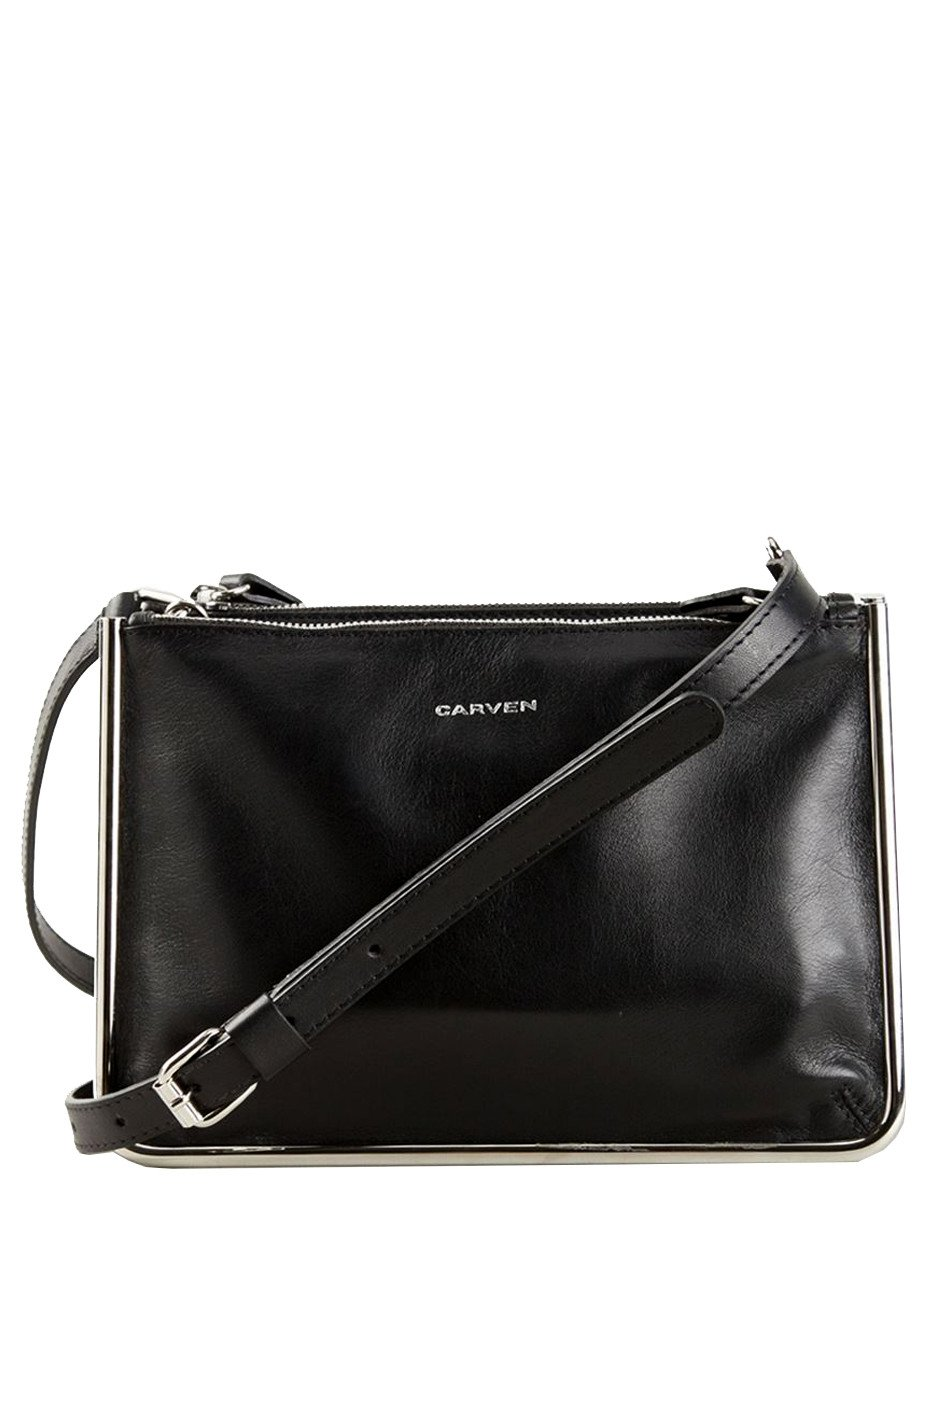 Carven Two Pocket Shoulder Bag in Black